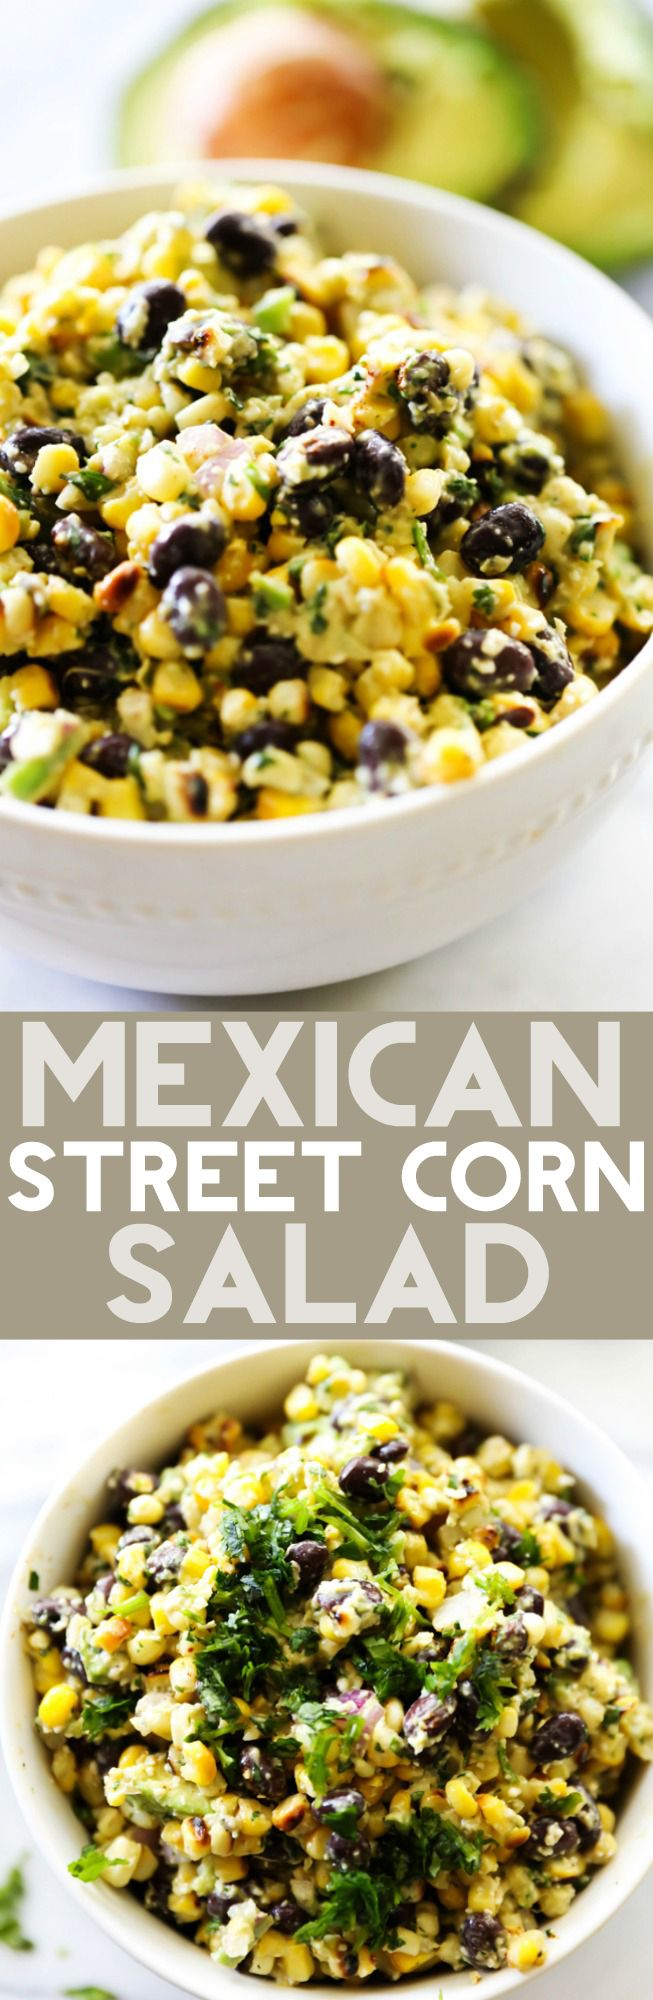 This Mexican Street Corn Salad is such a delicious and flavorful side dish that…